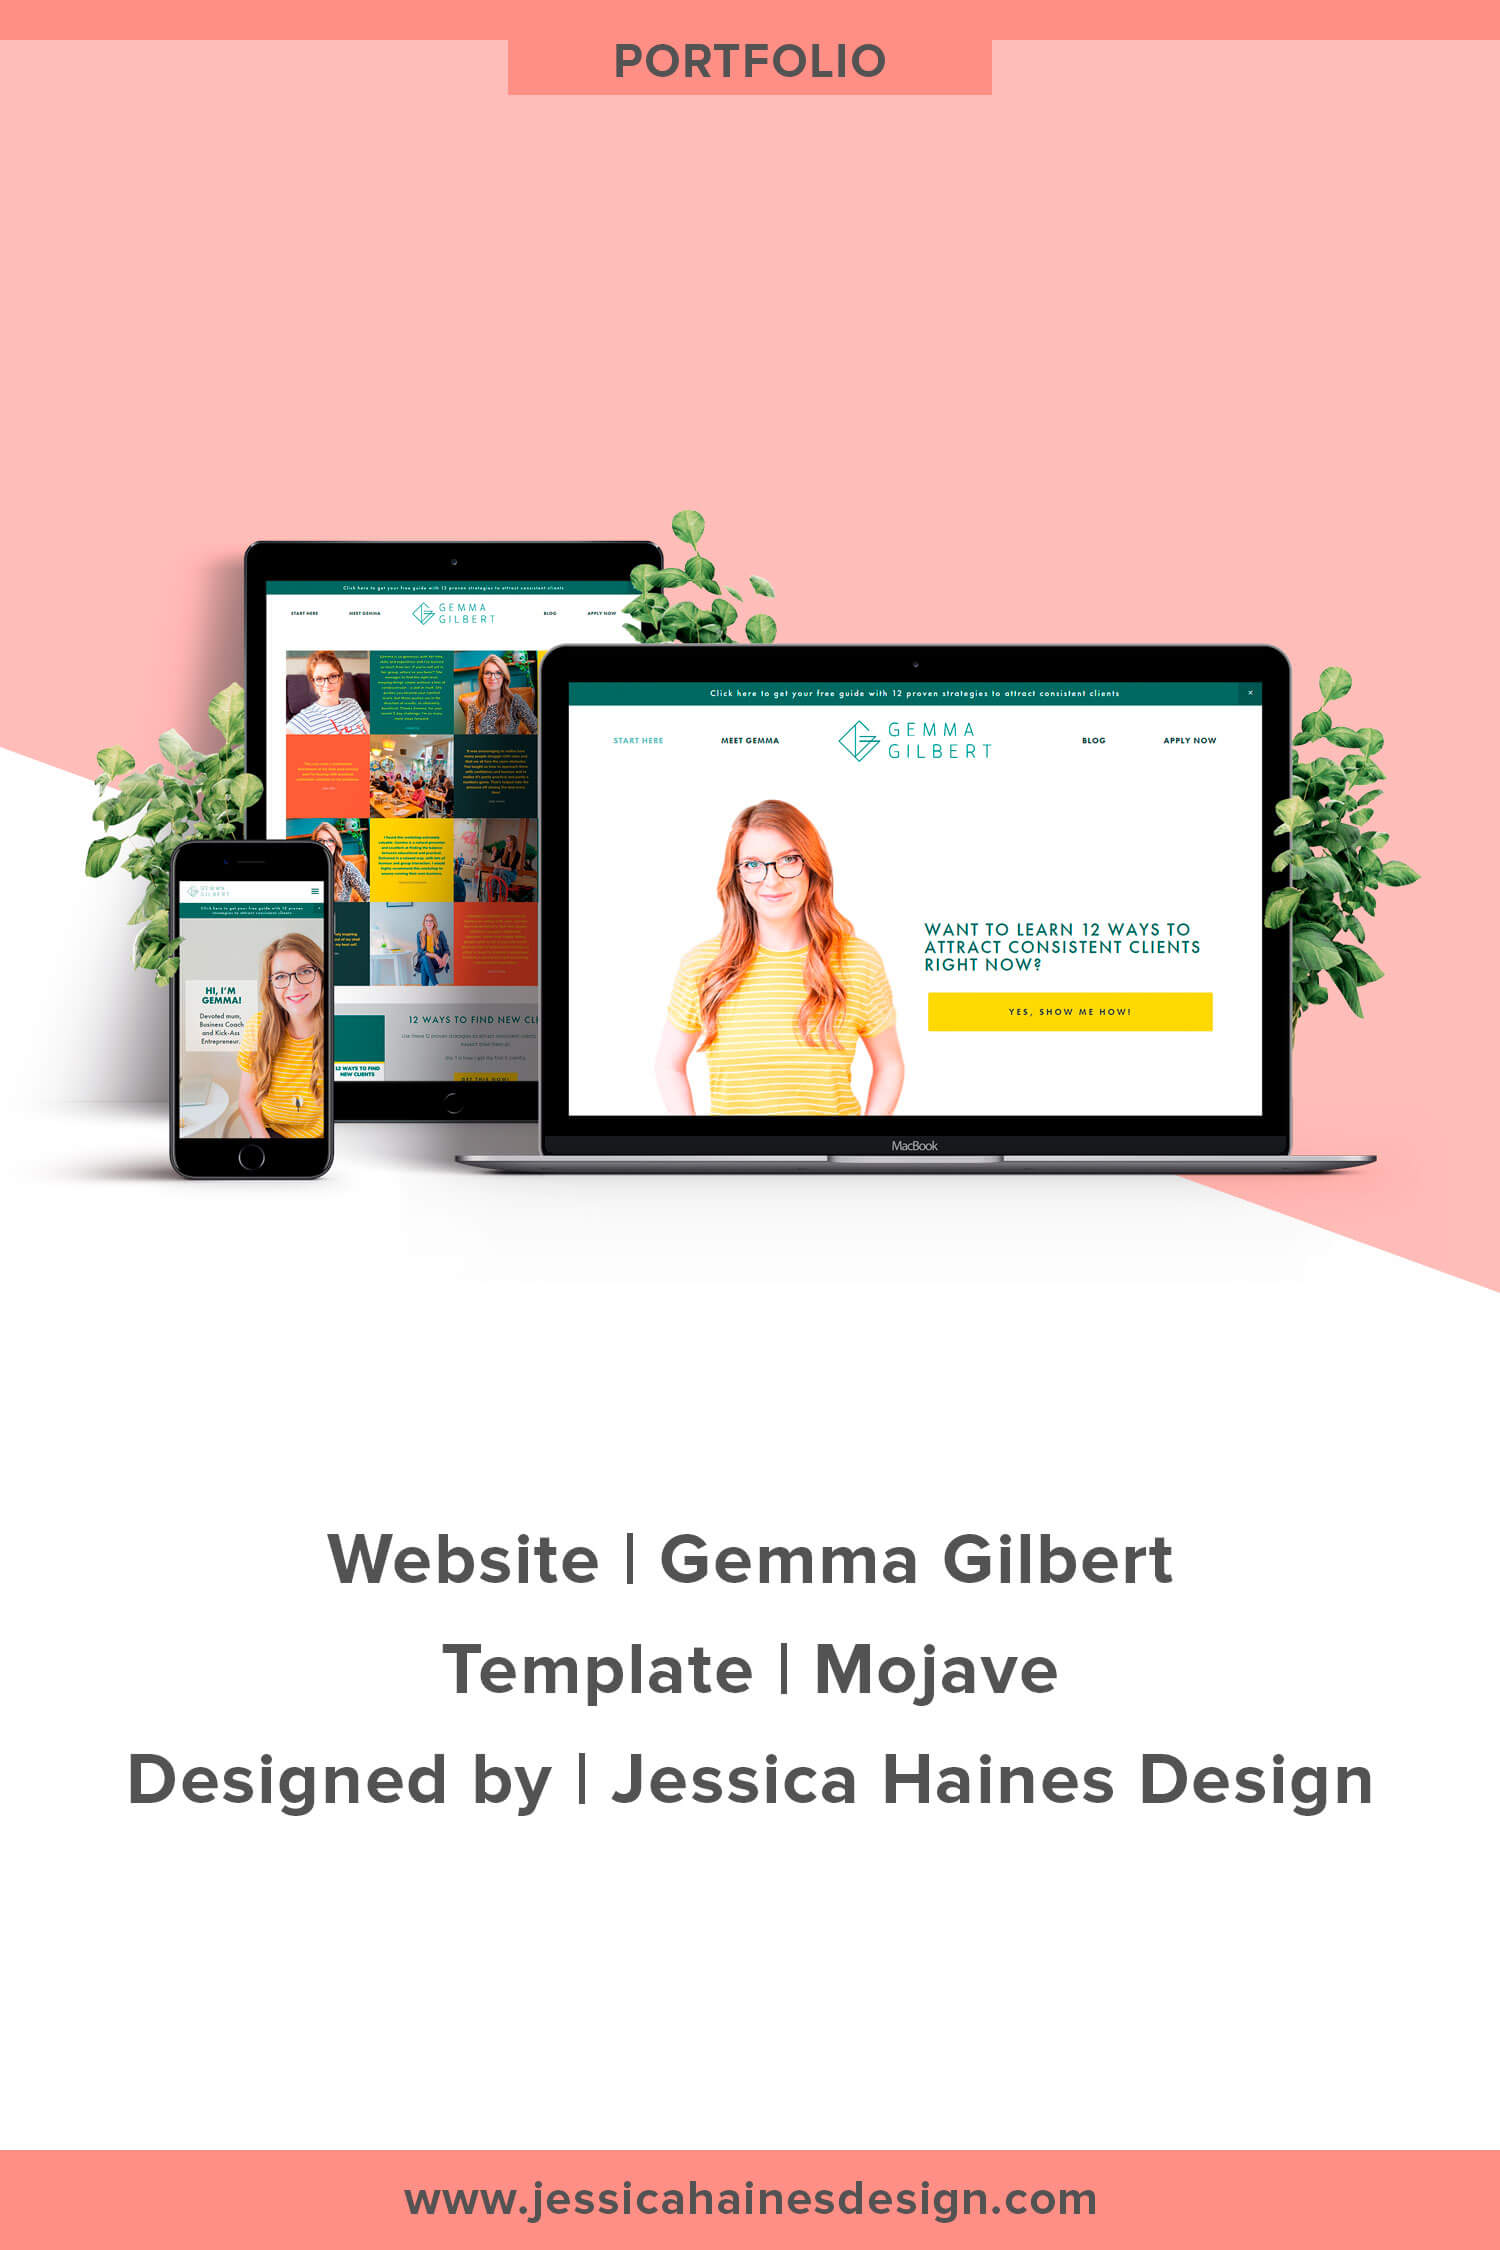 Gemma Gilbert is a business coach for mums in service-based businesses. When I first spoke with Gemma, she had DIY'd her website but wasn't in love with it and knew she needed a website revamp. She wanted something clean and simple that would help her grow her business, but didn't have the time to figure out how to get the website she wanted. Click through to see Gemma's new website and more about how it came together | www.jessicahainesdesign.com